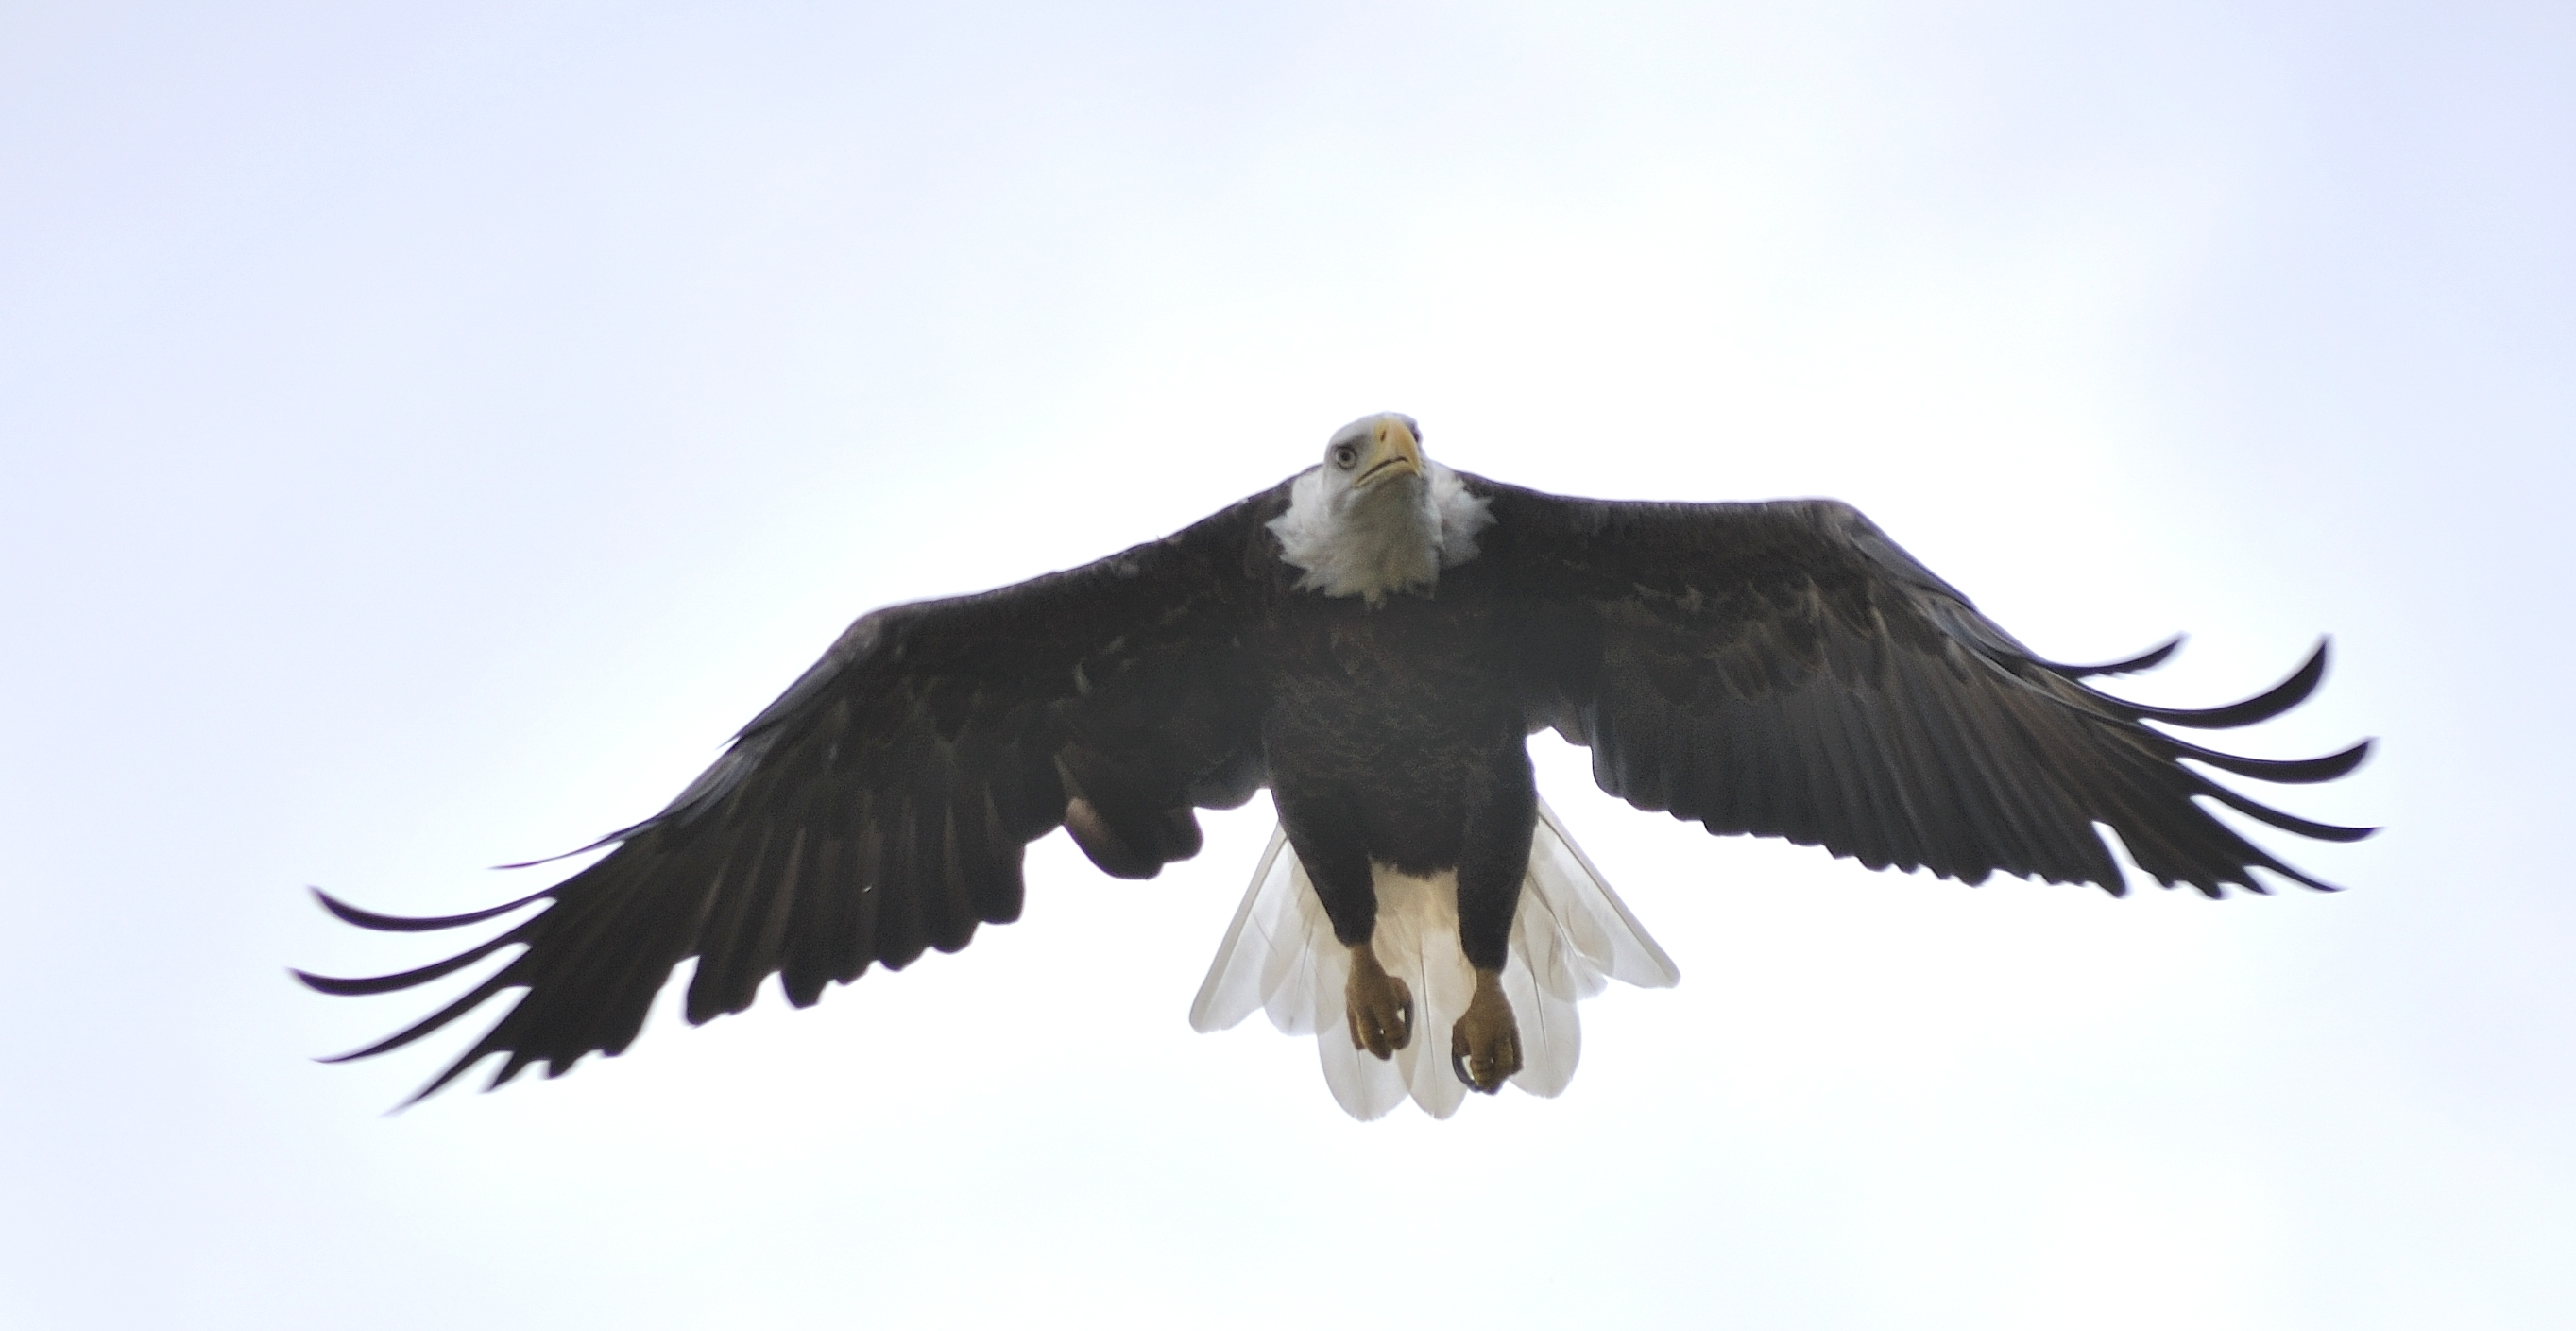 Eagle Coming In For A Landing, #Eagle